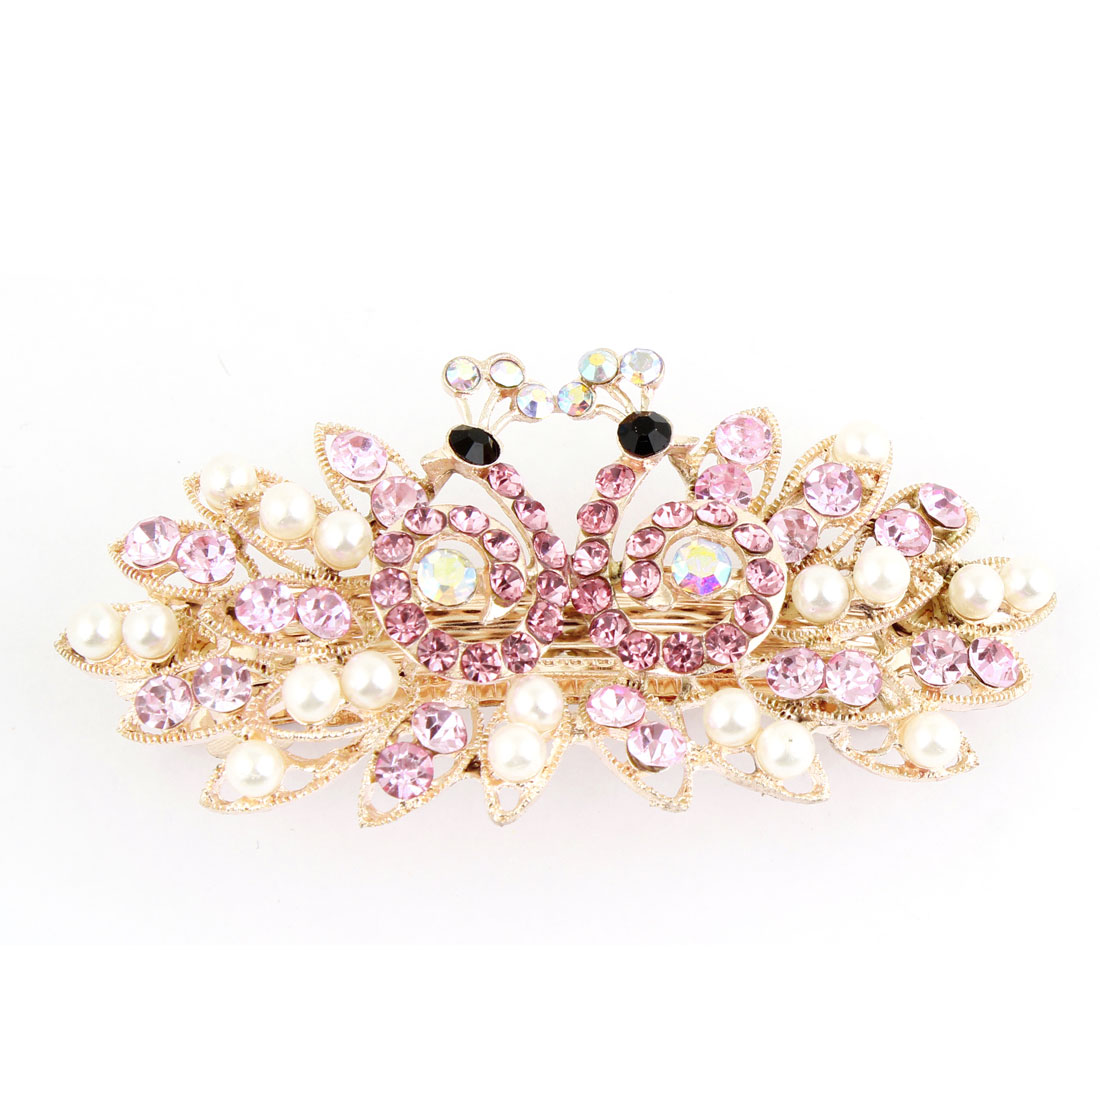 Light Pink Rhinestone Accent Peacock Design French Hair Clip for Lady